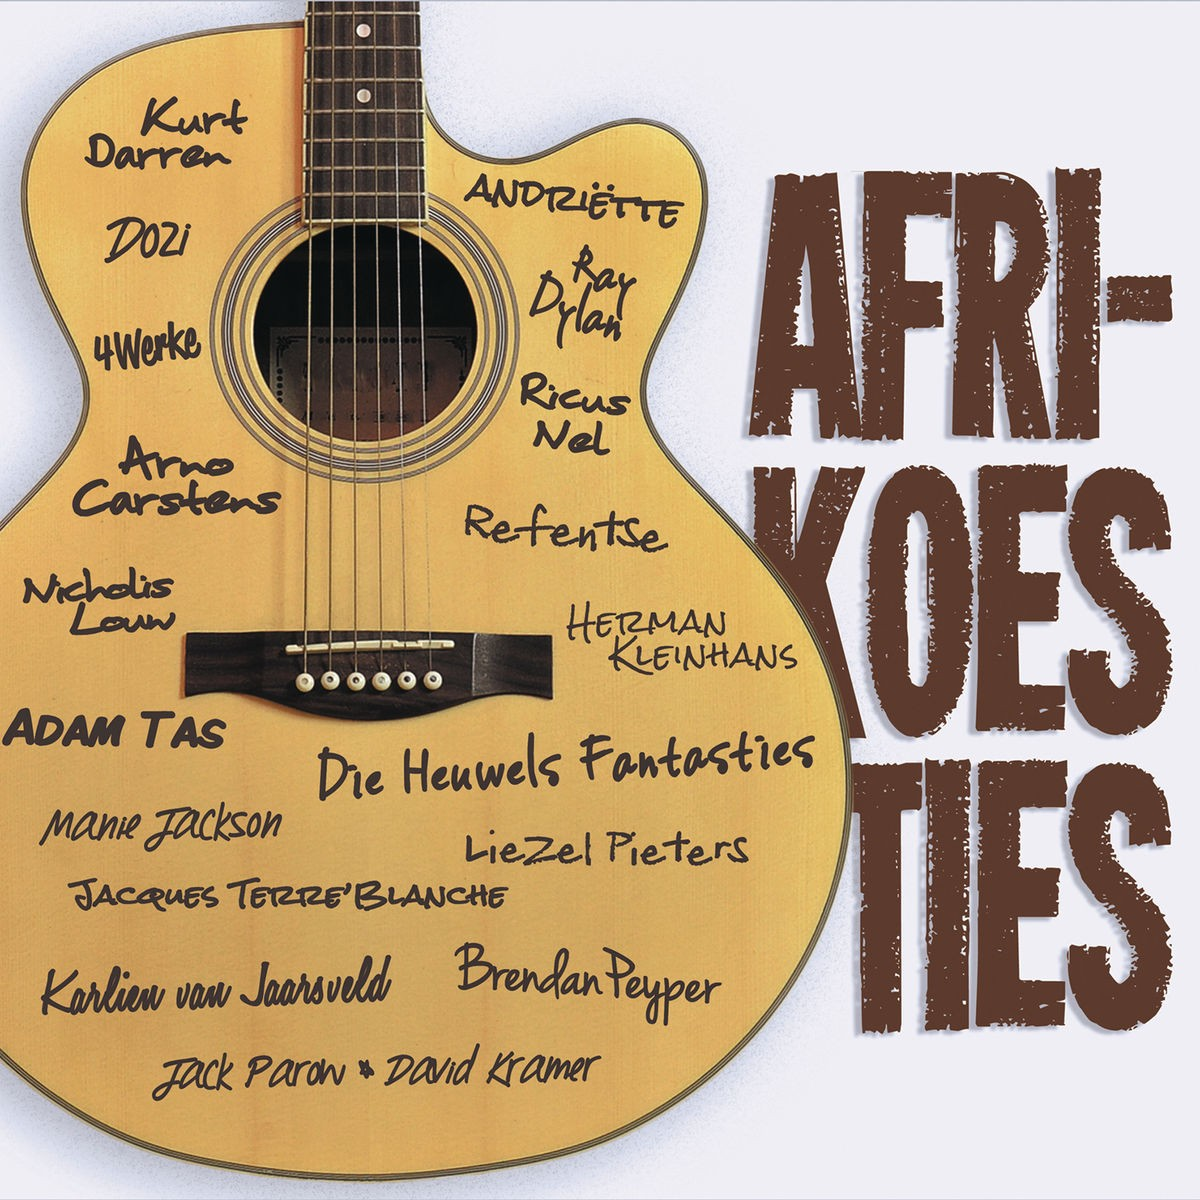 Afri-koesties CD - CDSEL0219